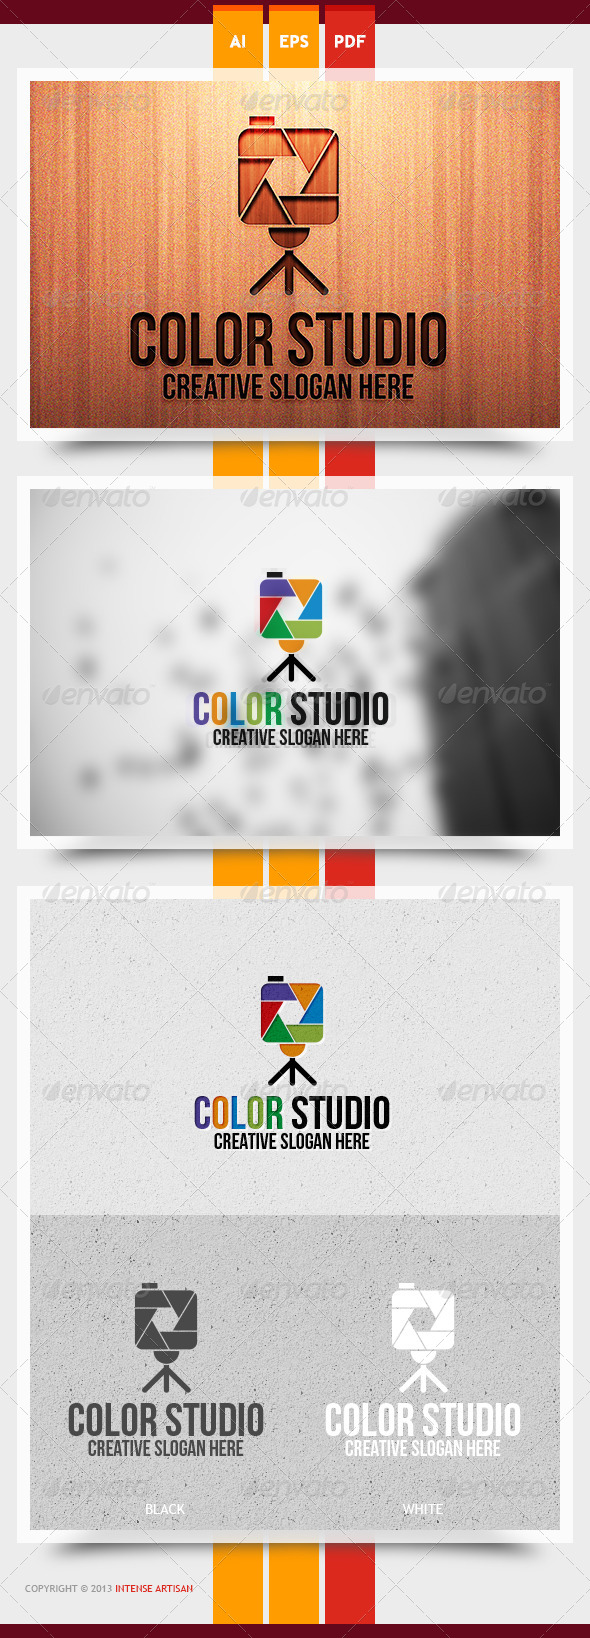 Color Studio Logo Template - Objects Logo Templates